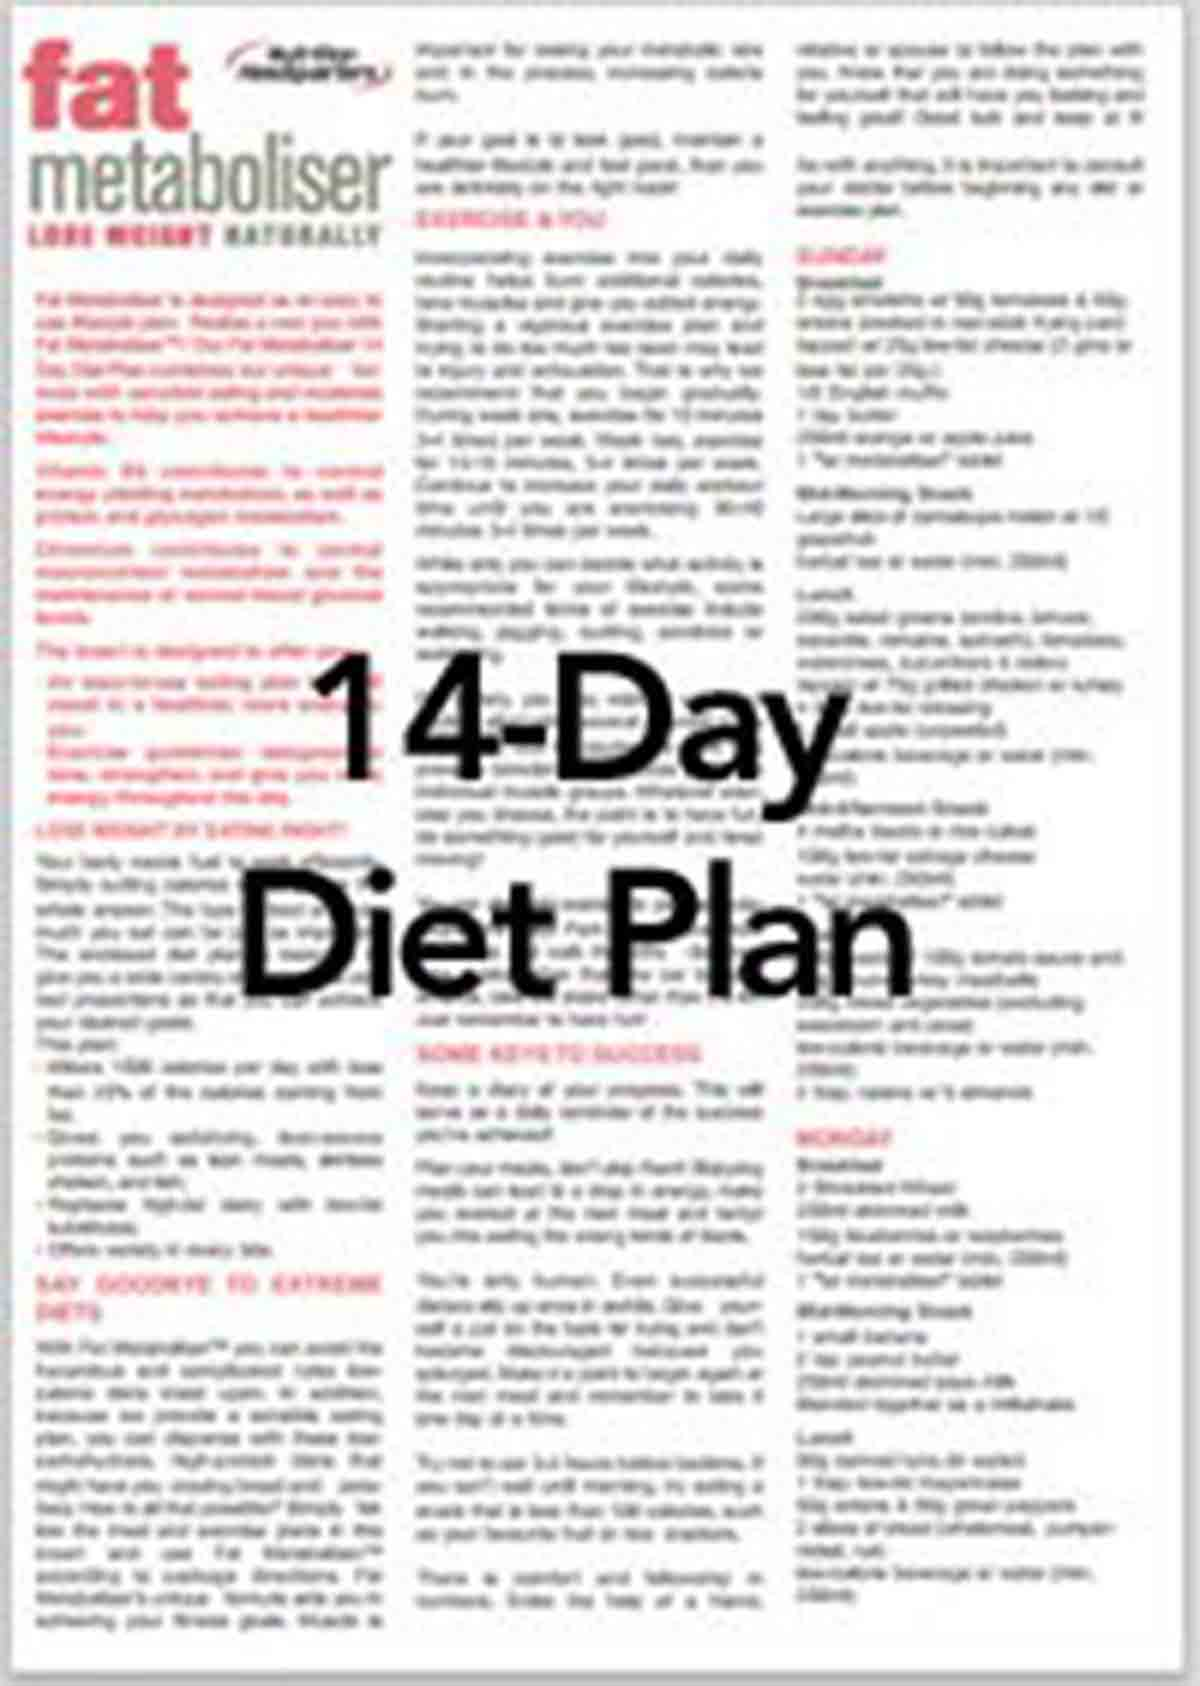 Fat Metaboliser 14-day Diet Plan